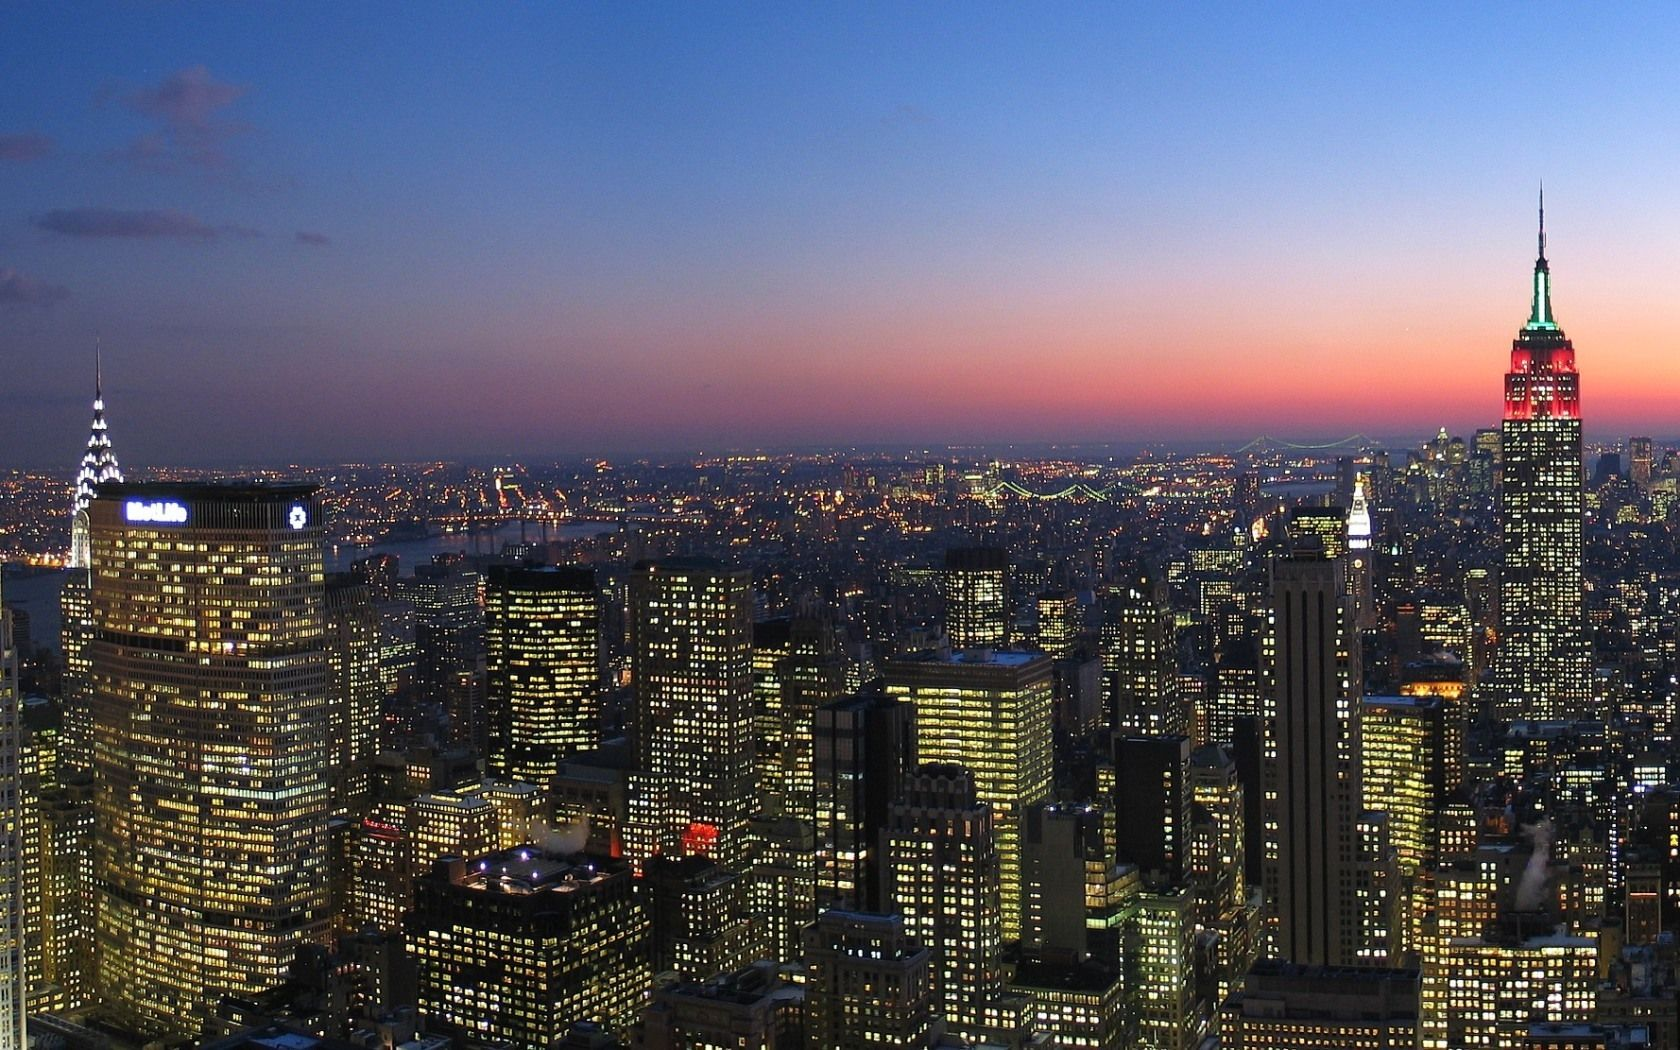 New York City... the Big Apple... the City that Never Sleeps... I'm coming to visit you soon! (I hope!)